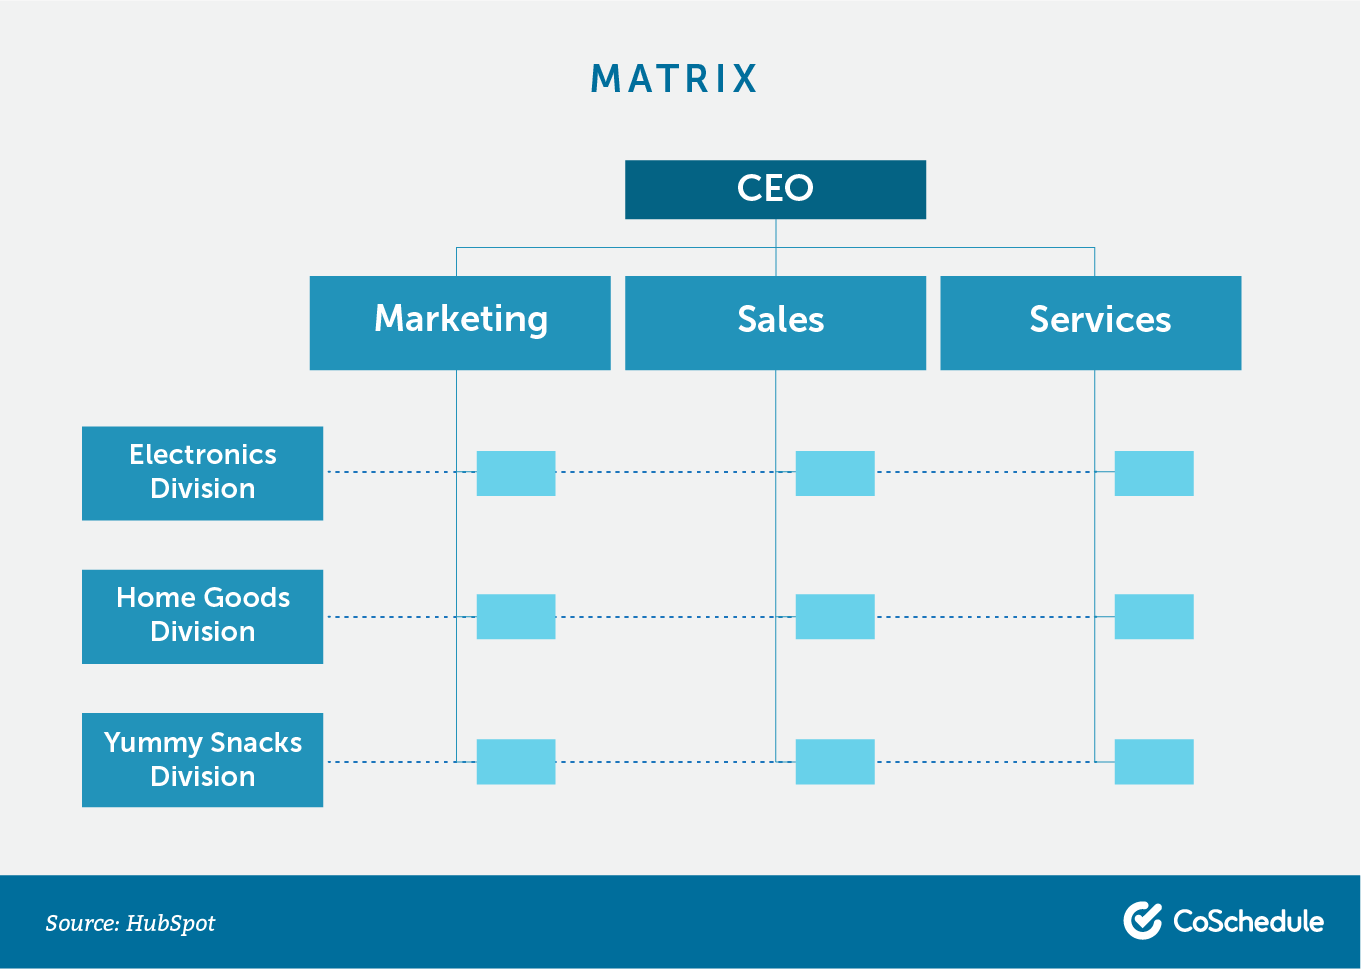 Matrix org chart.